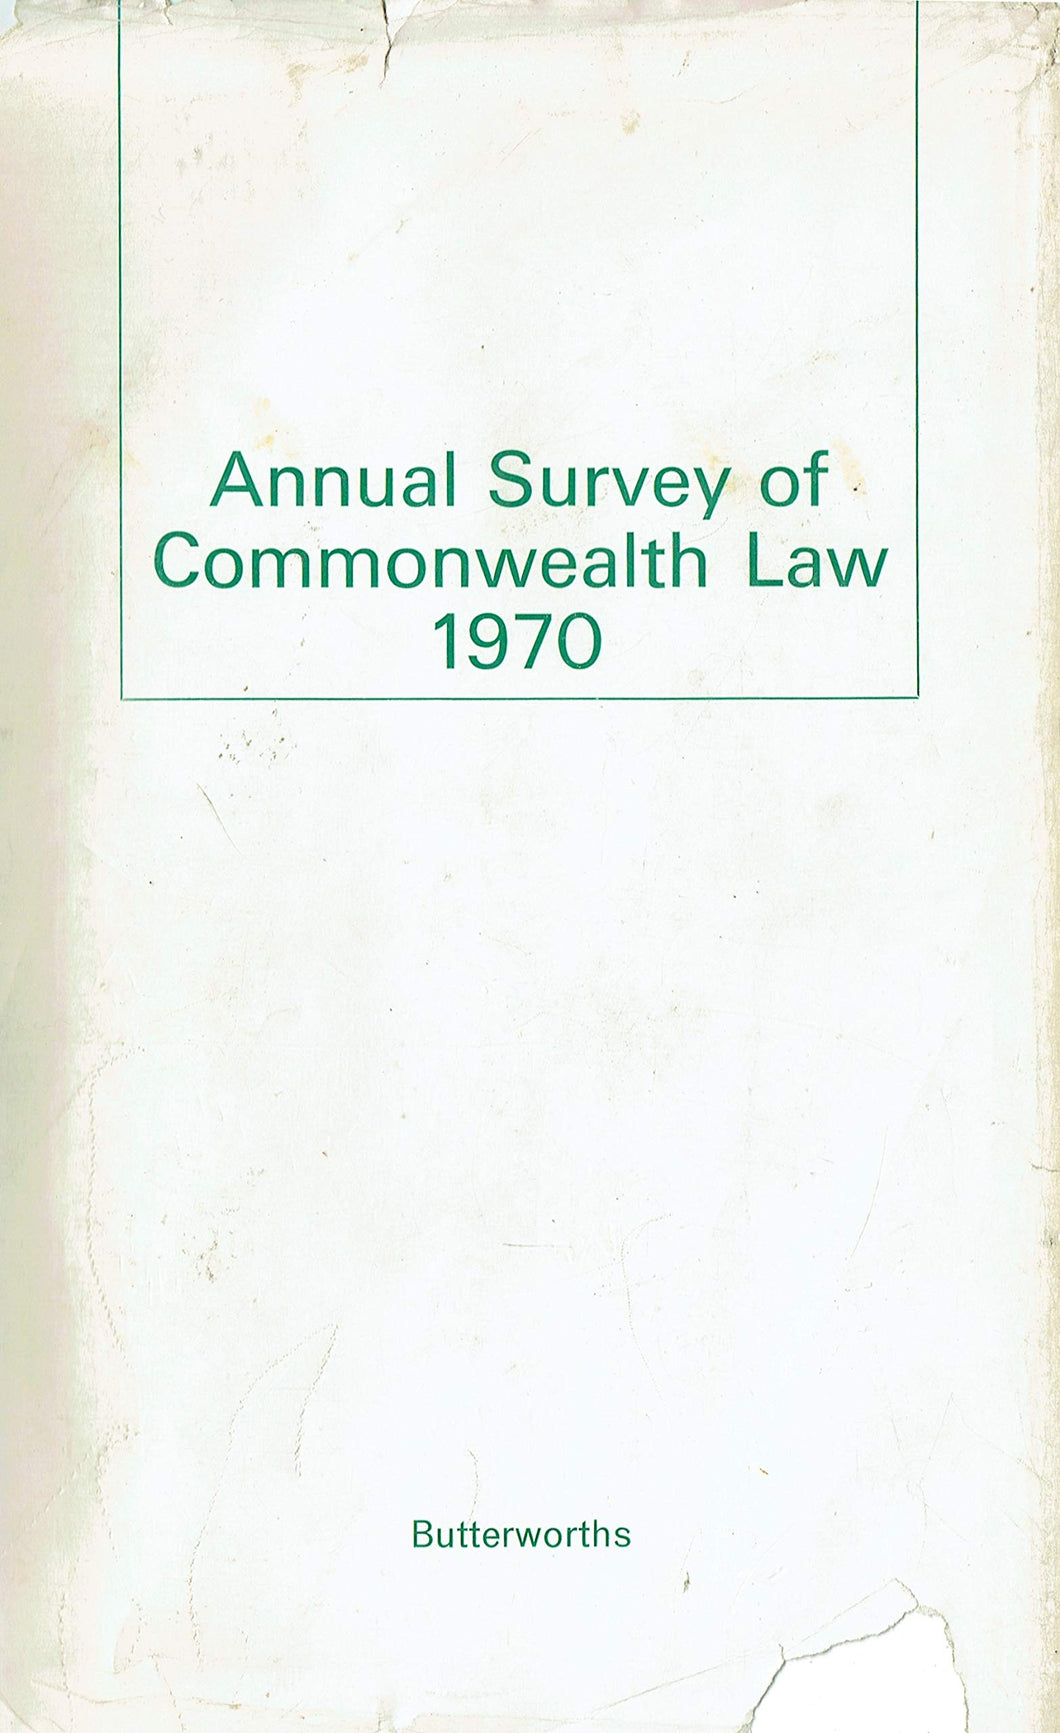 Annual Survey of Commonwealth Law 1970